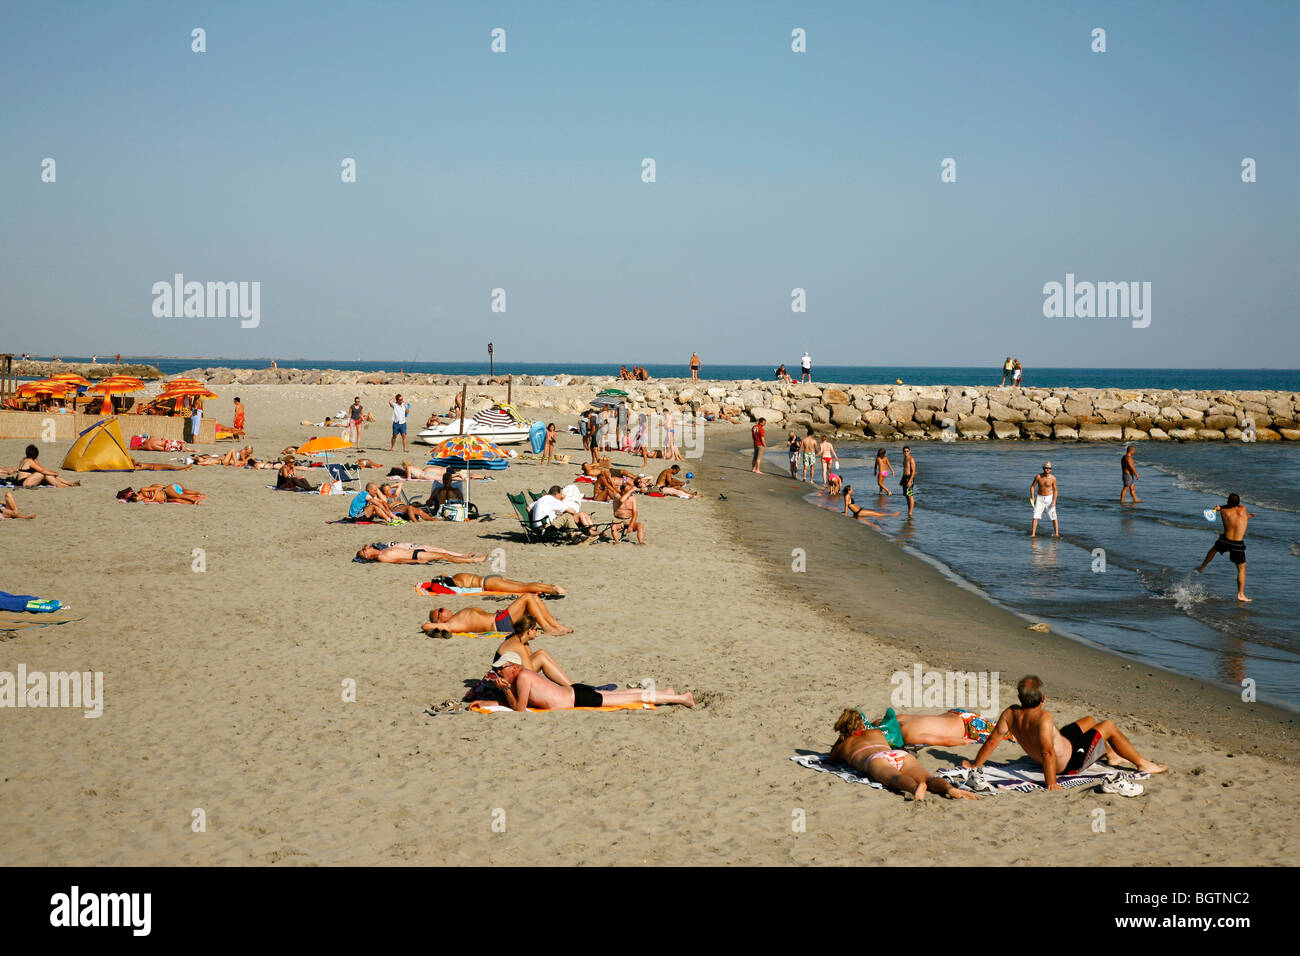 der strand von saintes maries de la mer provence frankreich stockfoto bild 27588514 alamy. Black Bedroom Furniture Sets. Home Design Ideas